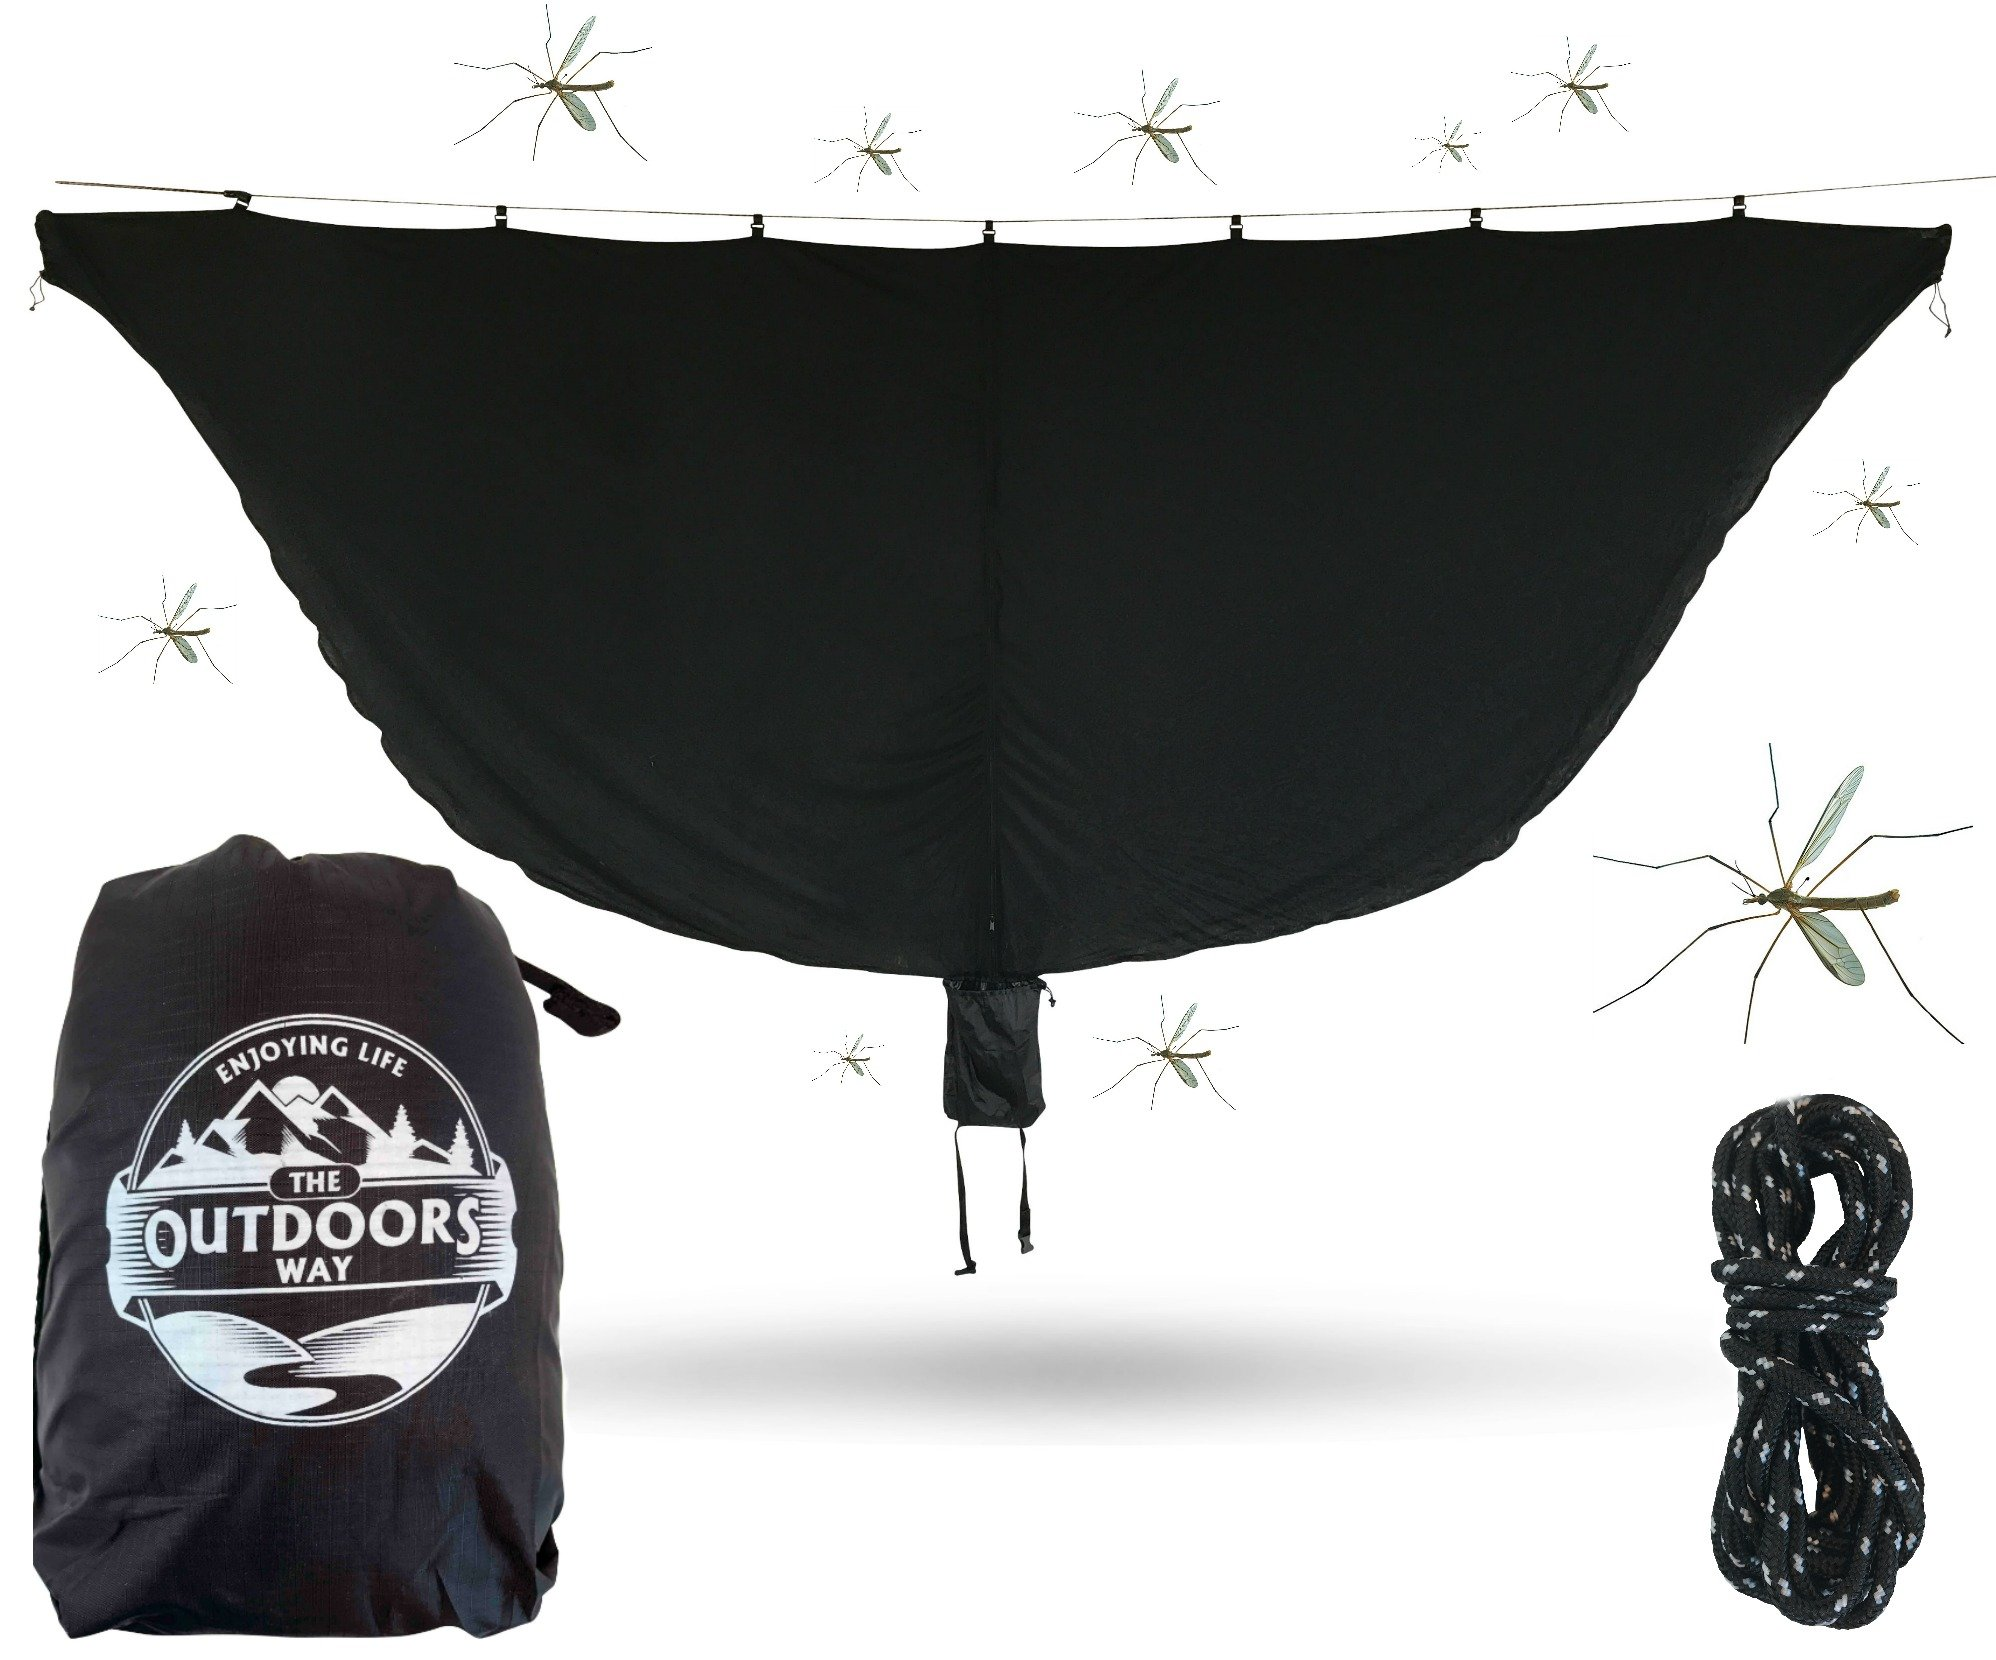 The Outdoors Way Hammock Mosquito Net - 11 Foot Bug Net Fits Any Hammock - Perfect To Keep Mosquitoes & Noseeums OUT! Easy To Set Up + Lightweight + Attached Carry Pouch. Performance Delivered.